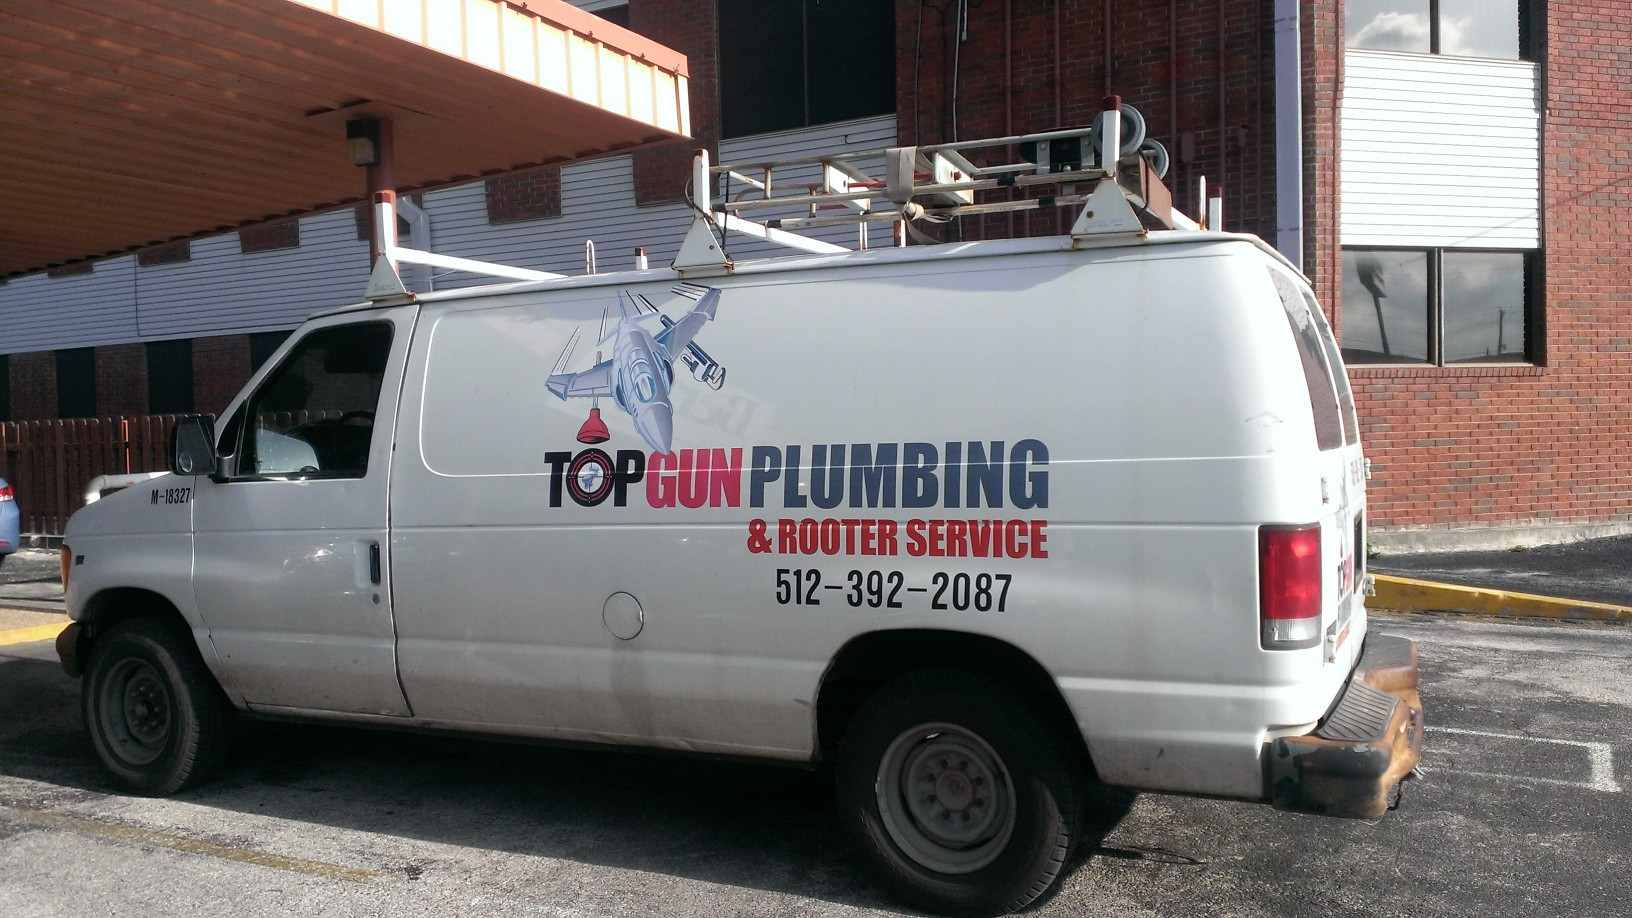 Truck of our plumbers in San Marcos, TX